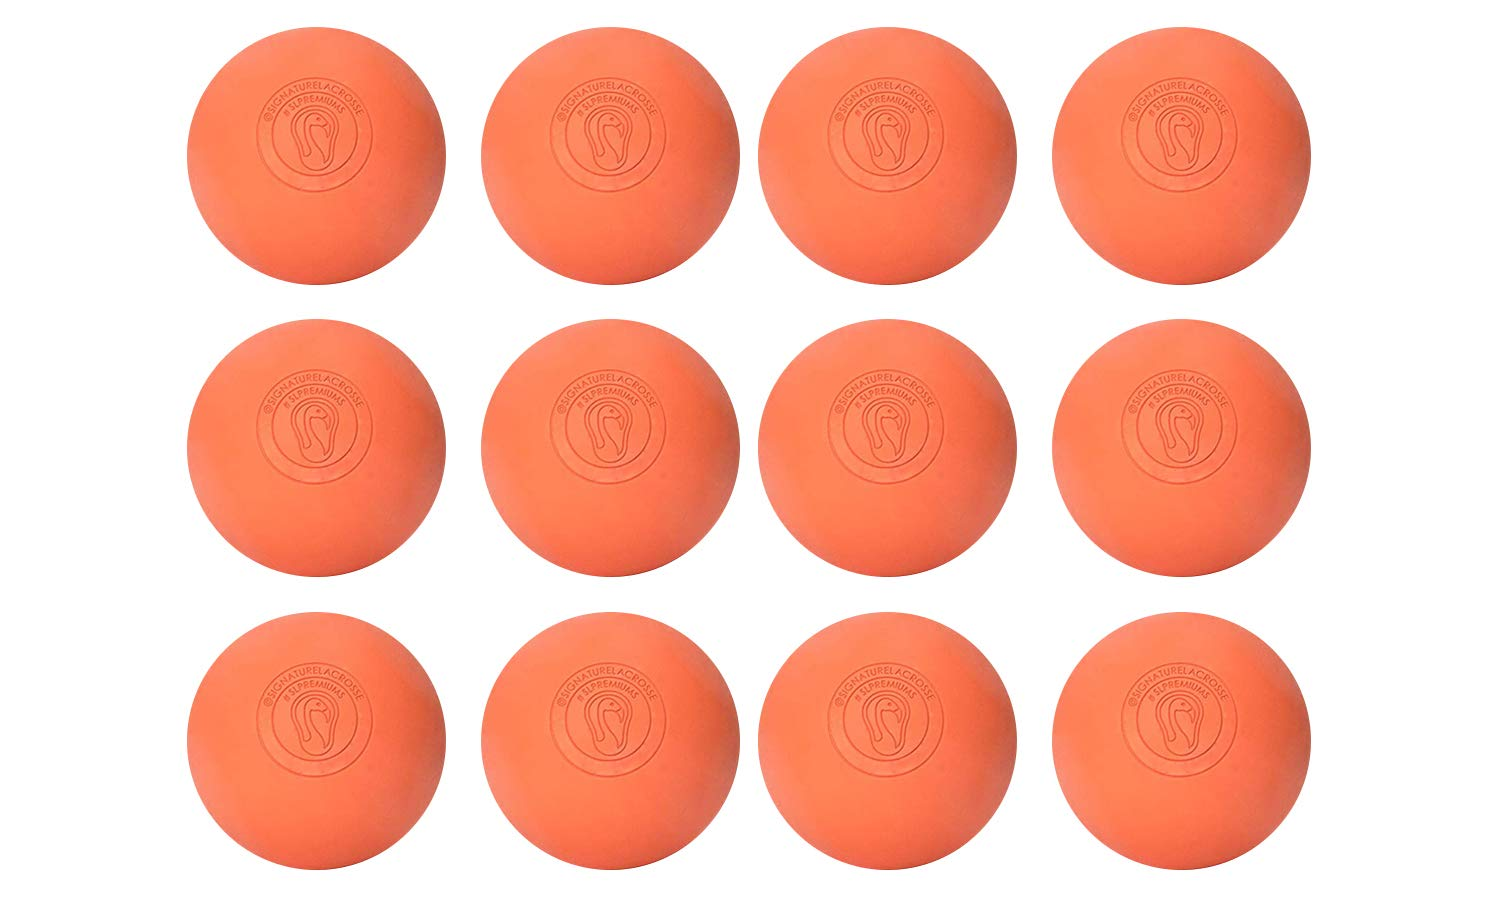 Signature Lacrosse Ball Set Muscle Knot Remover Firm Rubber -Scientifically Designed for Durability Myofascial Release Tools Back Roller Massage Balls